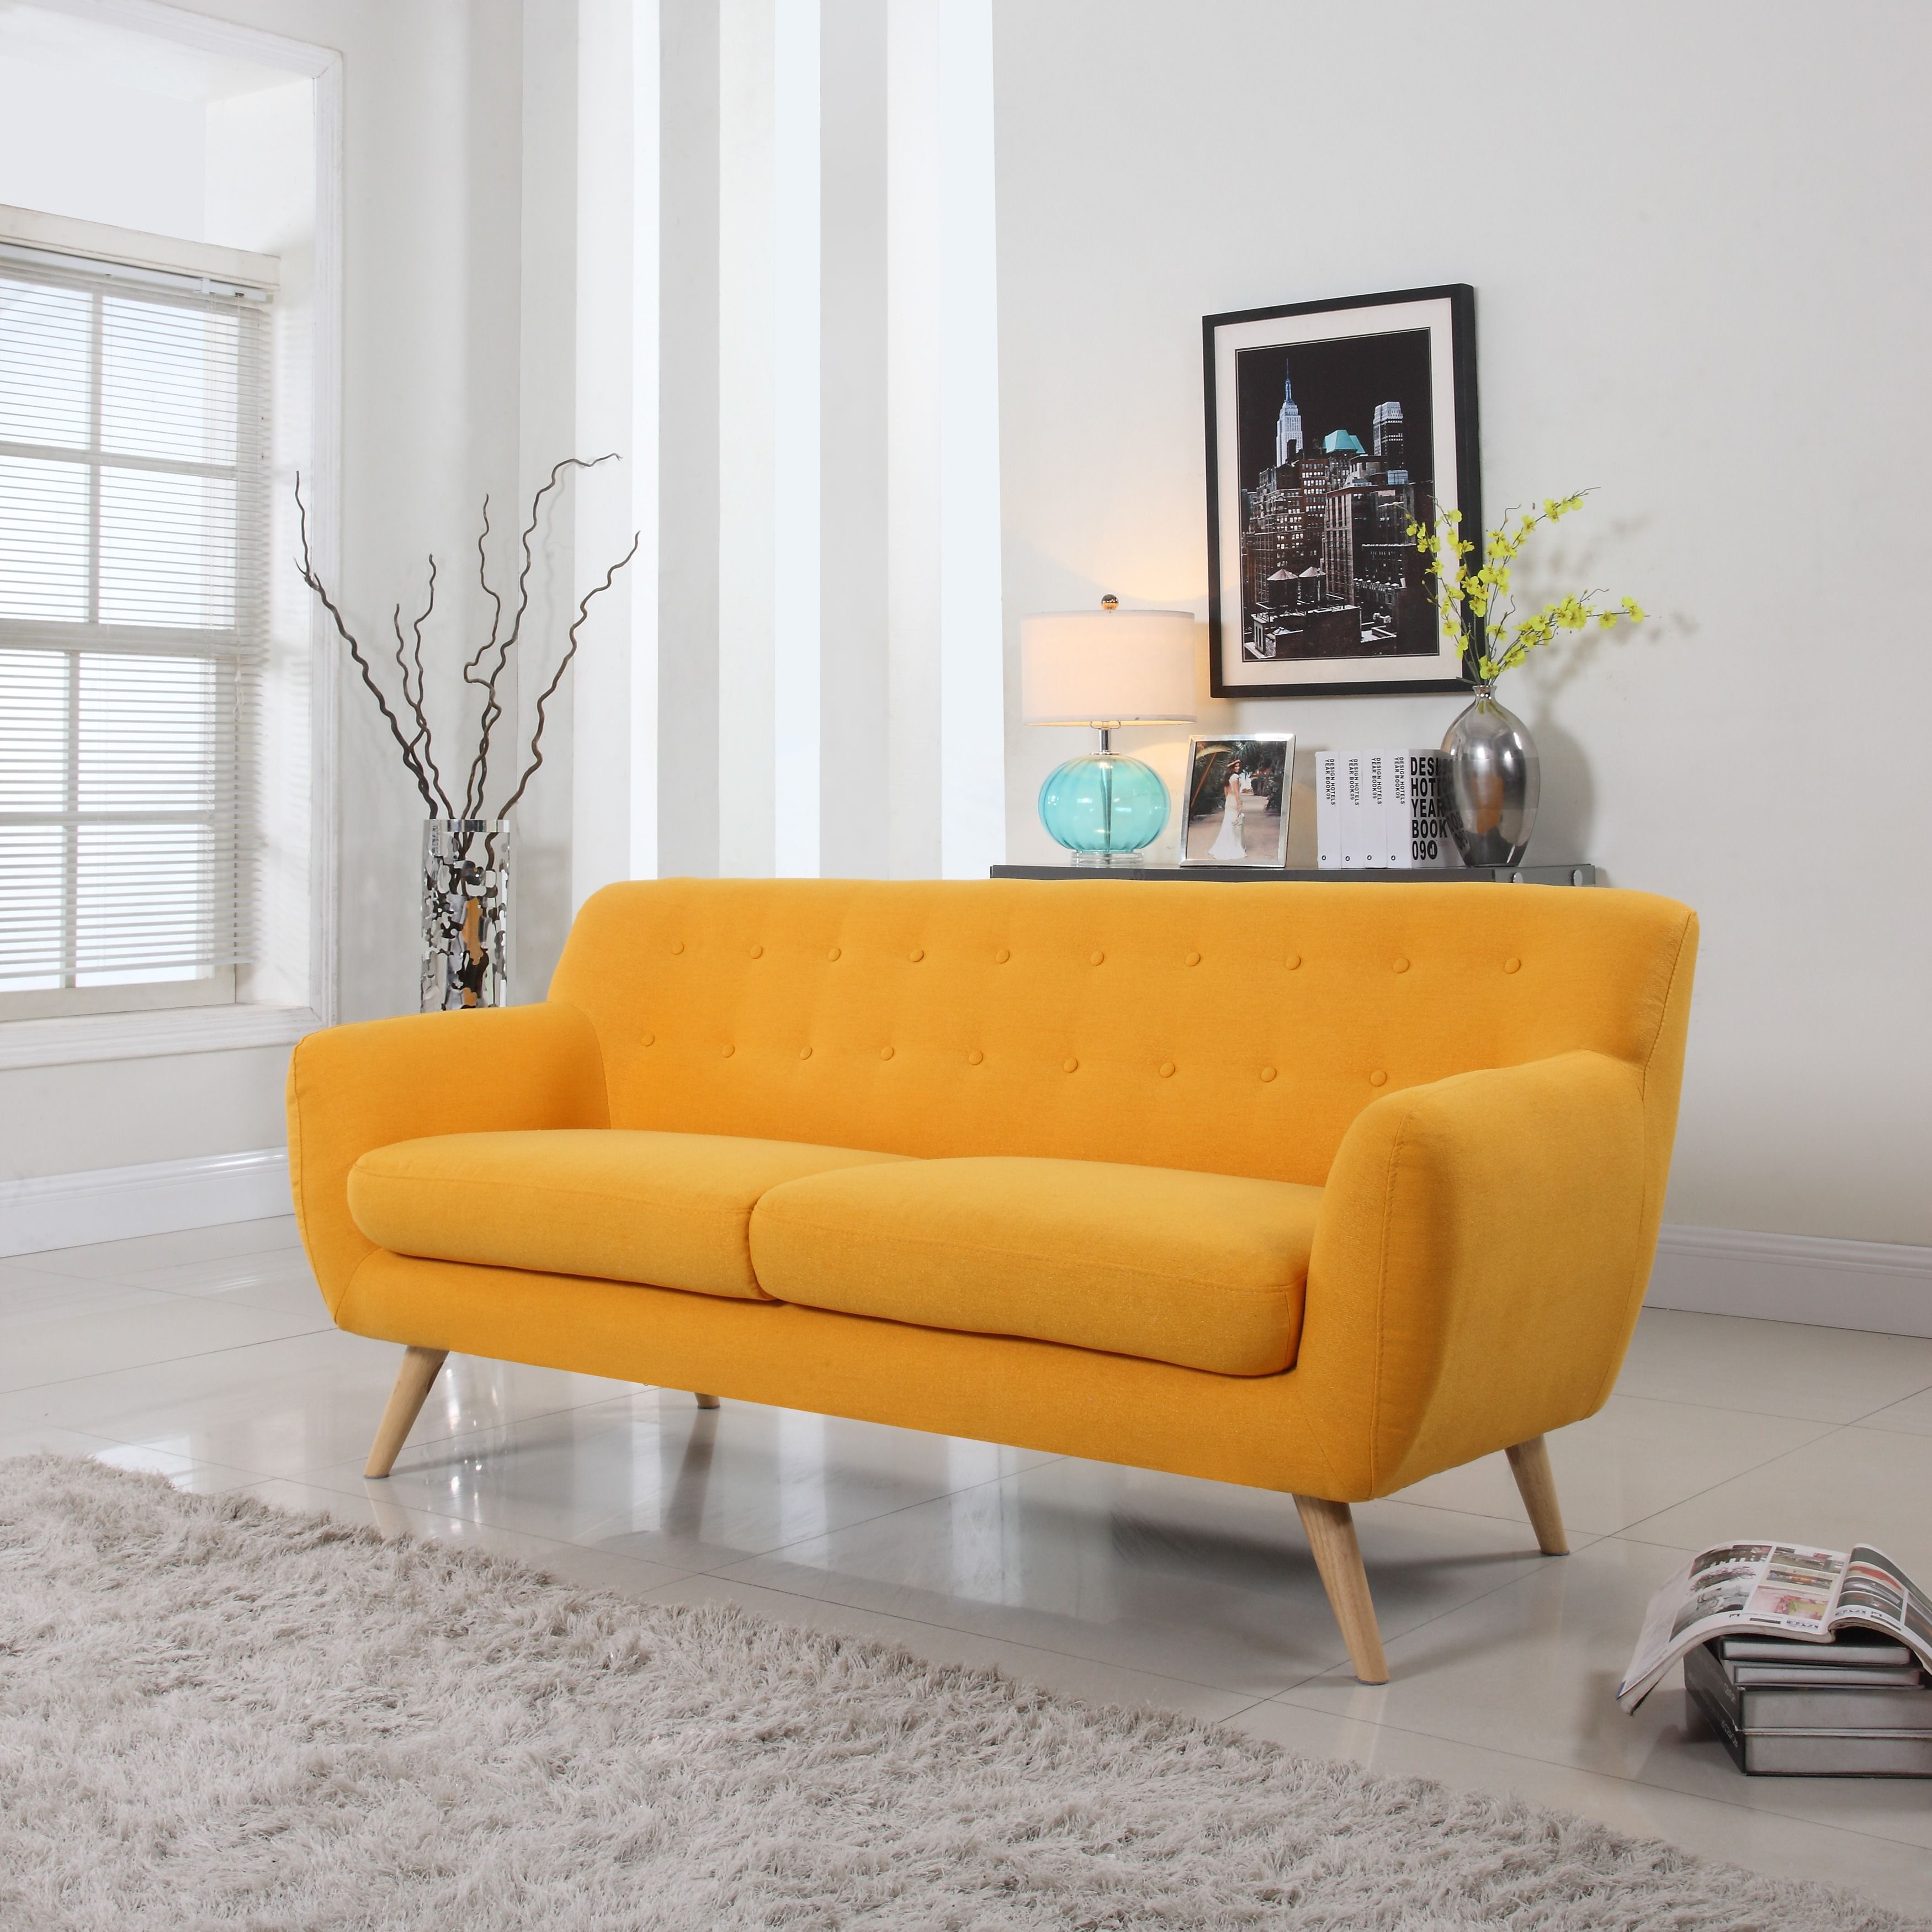 Funky Modern Living Room Furniture brighten your living room or recreation room with a colorful and